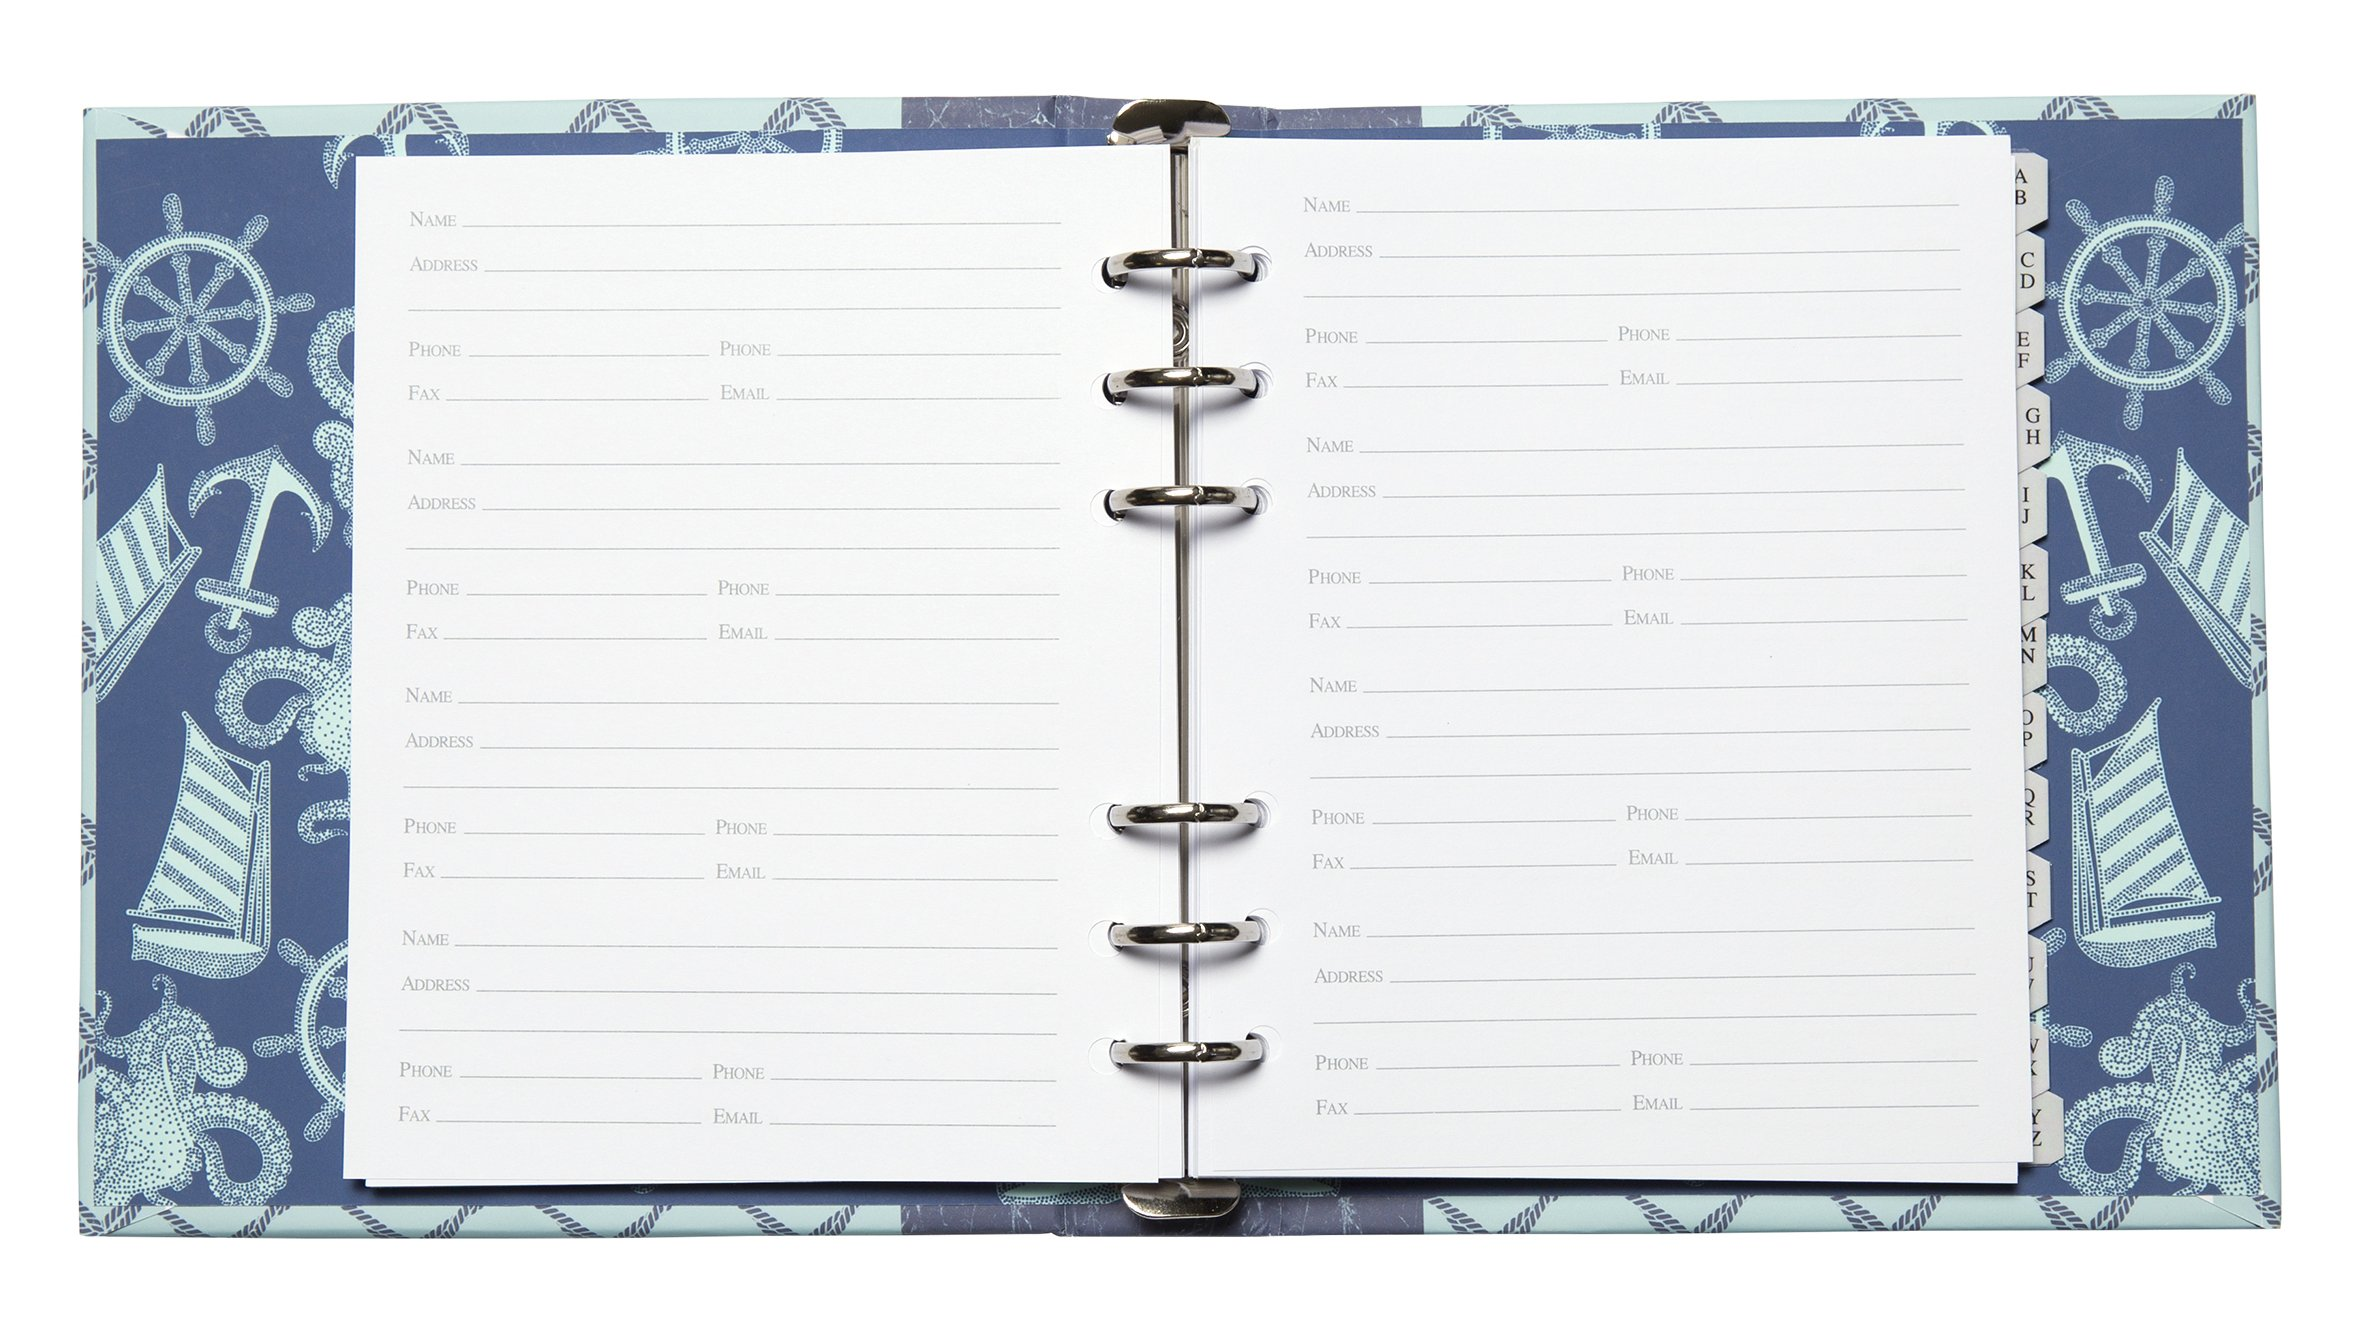 C.R. Gibson Refillable Address Book, 6-Ring Binder Format, Tabbed Dividers, 4 Entries Per Page, 440 Contacts, Measures 6.5'' x 7.25'' - Ocean's Depth by C.R. Gibson (Image #2)